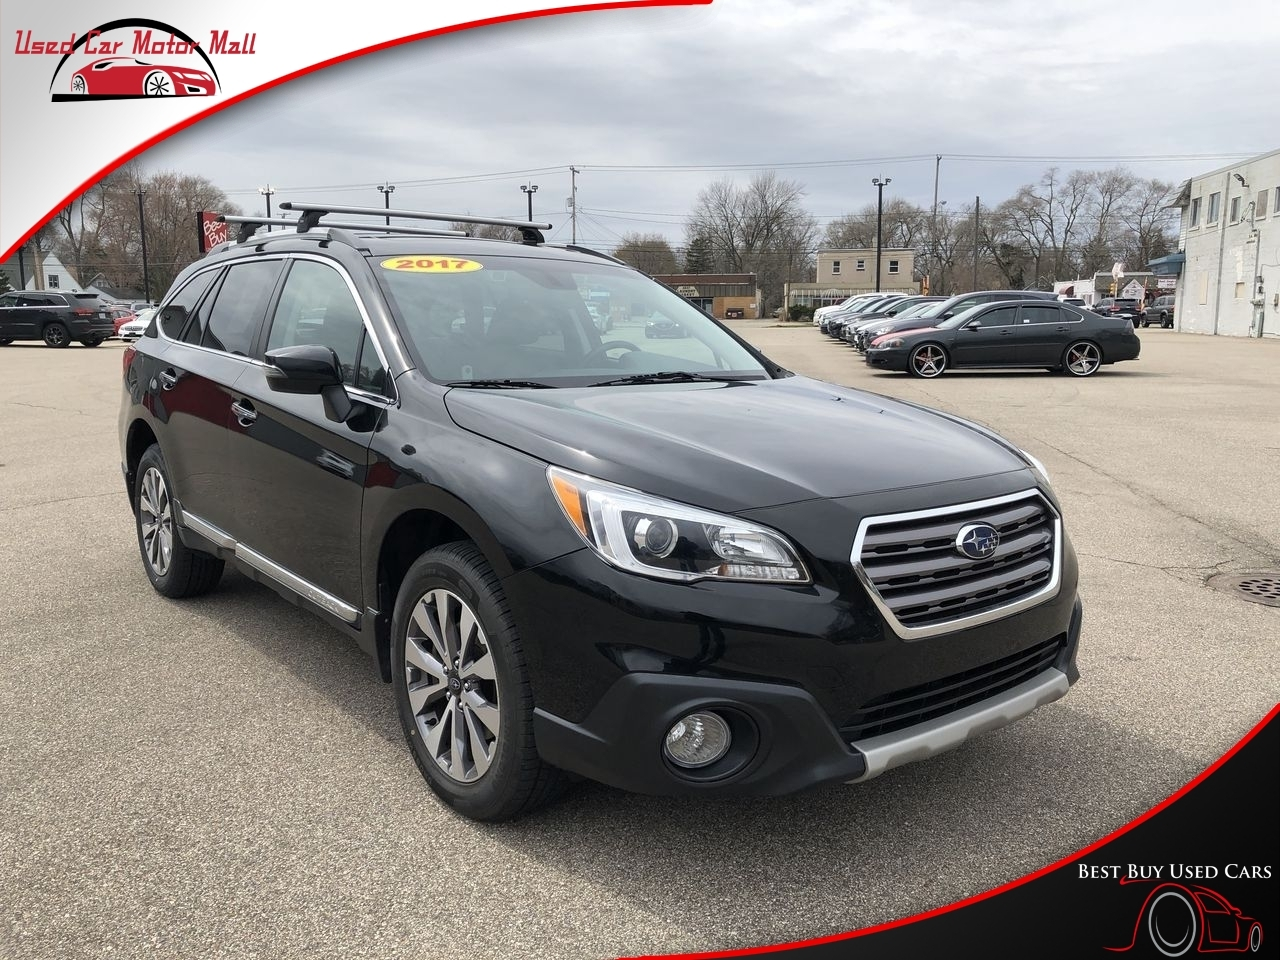 2018 Subaru Forester 2.5i Premium, 512633, Photo 1